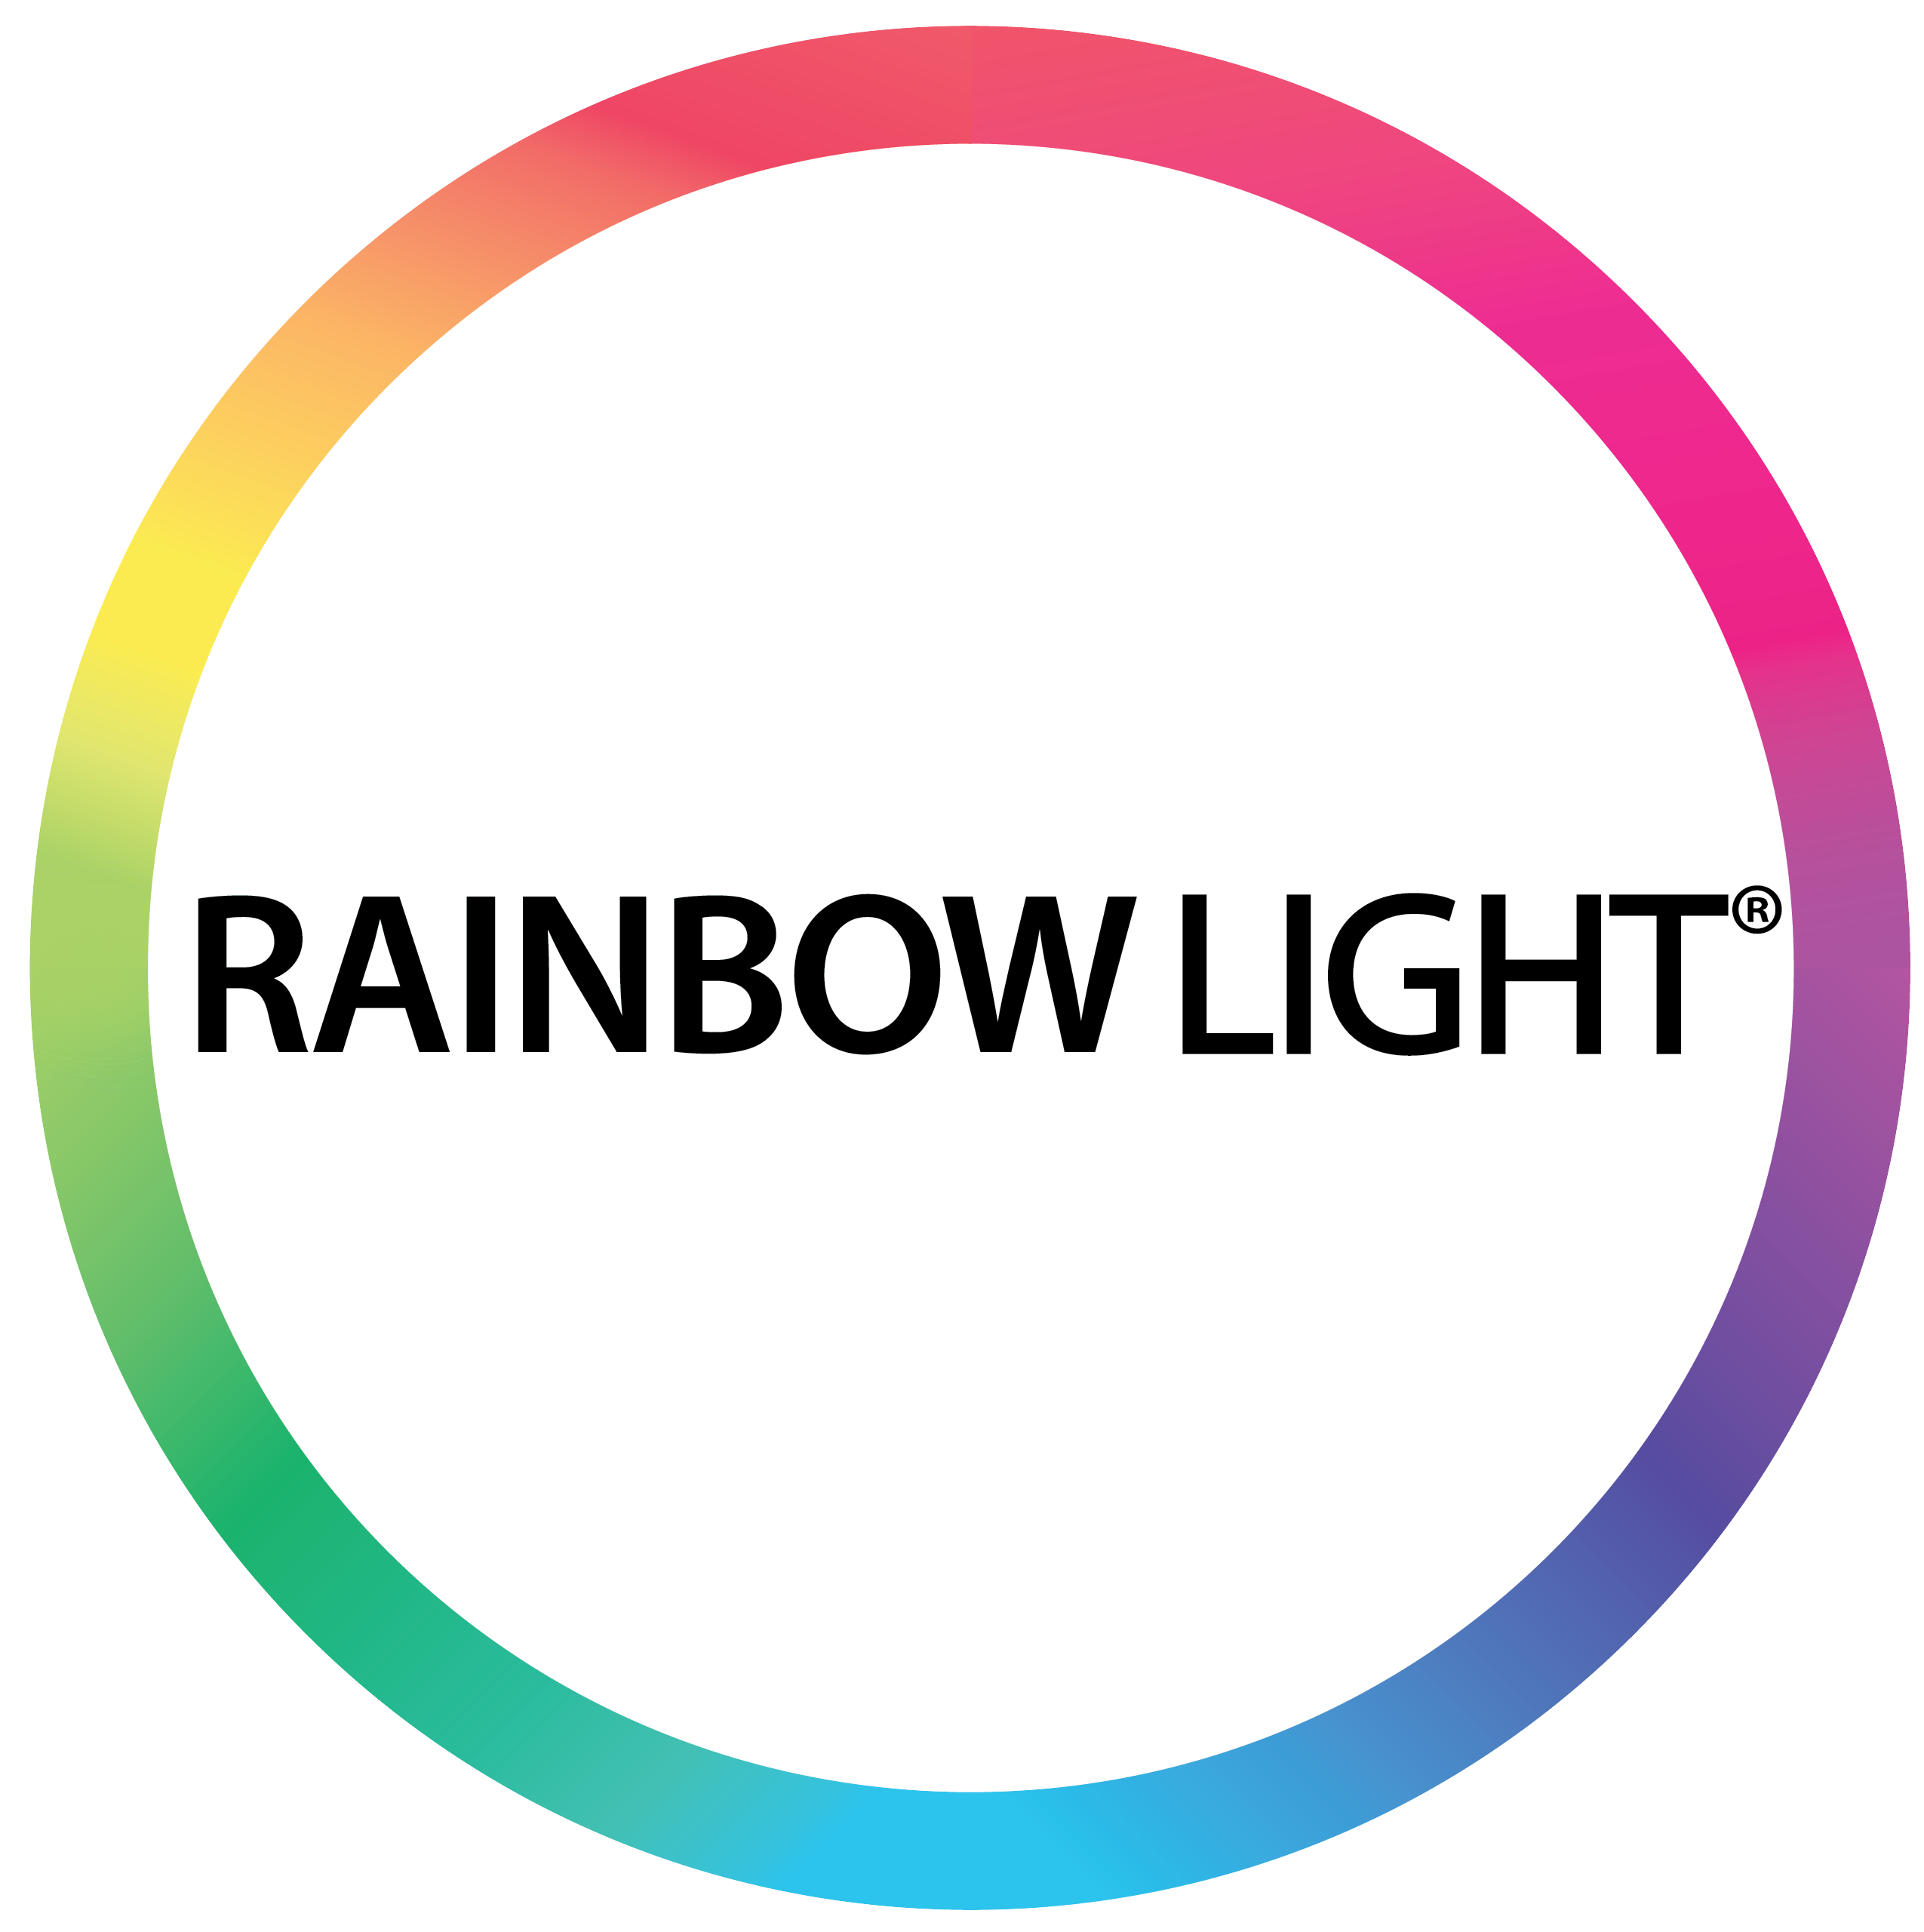 Rainbow Light Oni Global